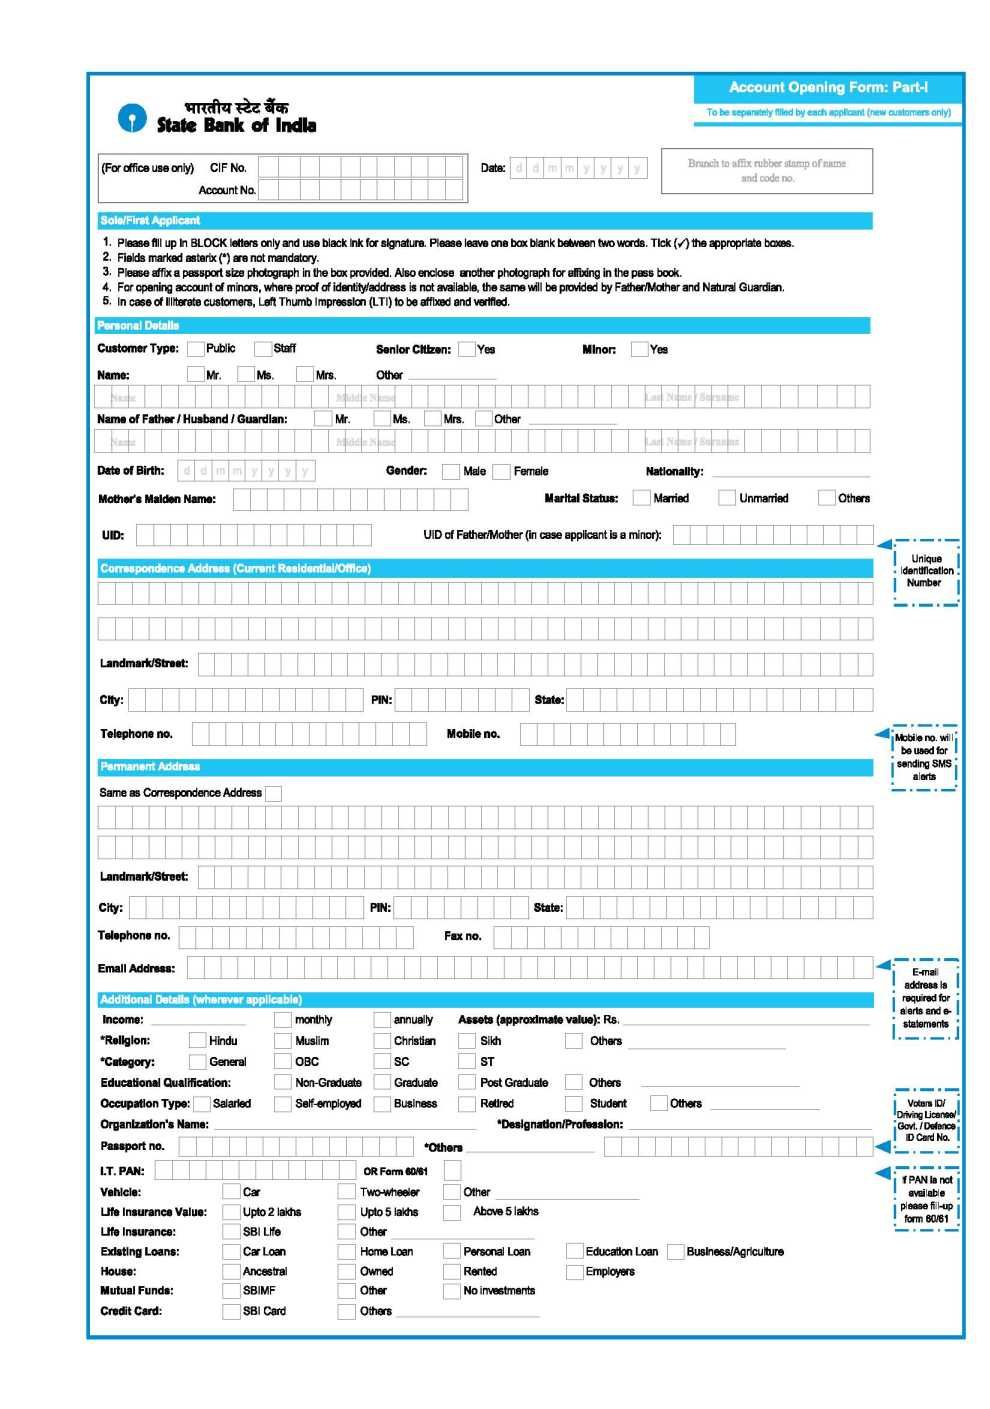 dae22da95a43c6ff4487d4456cdcbddf Job Application Form Of State Bank India on